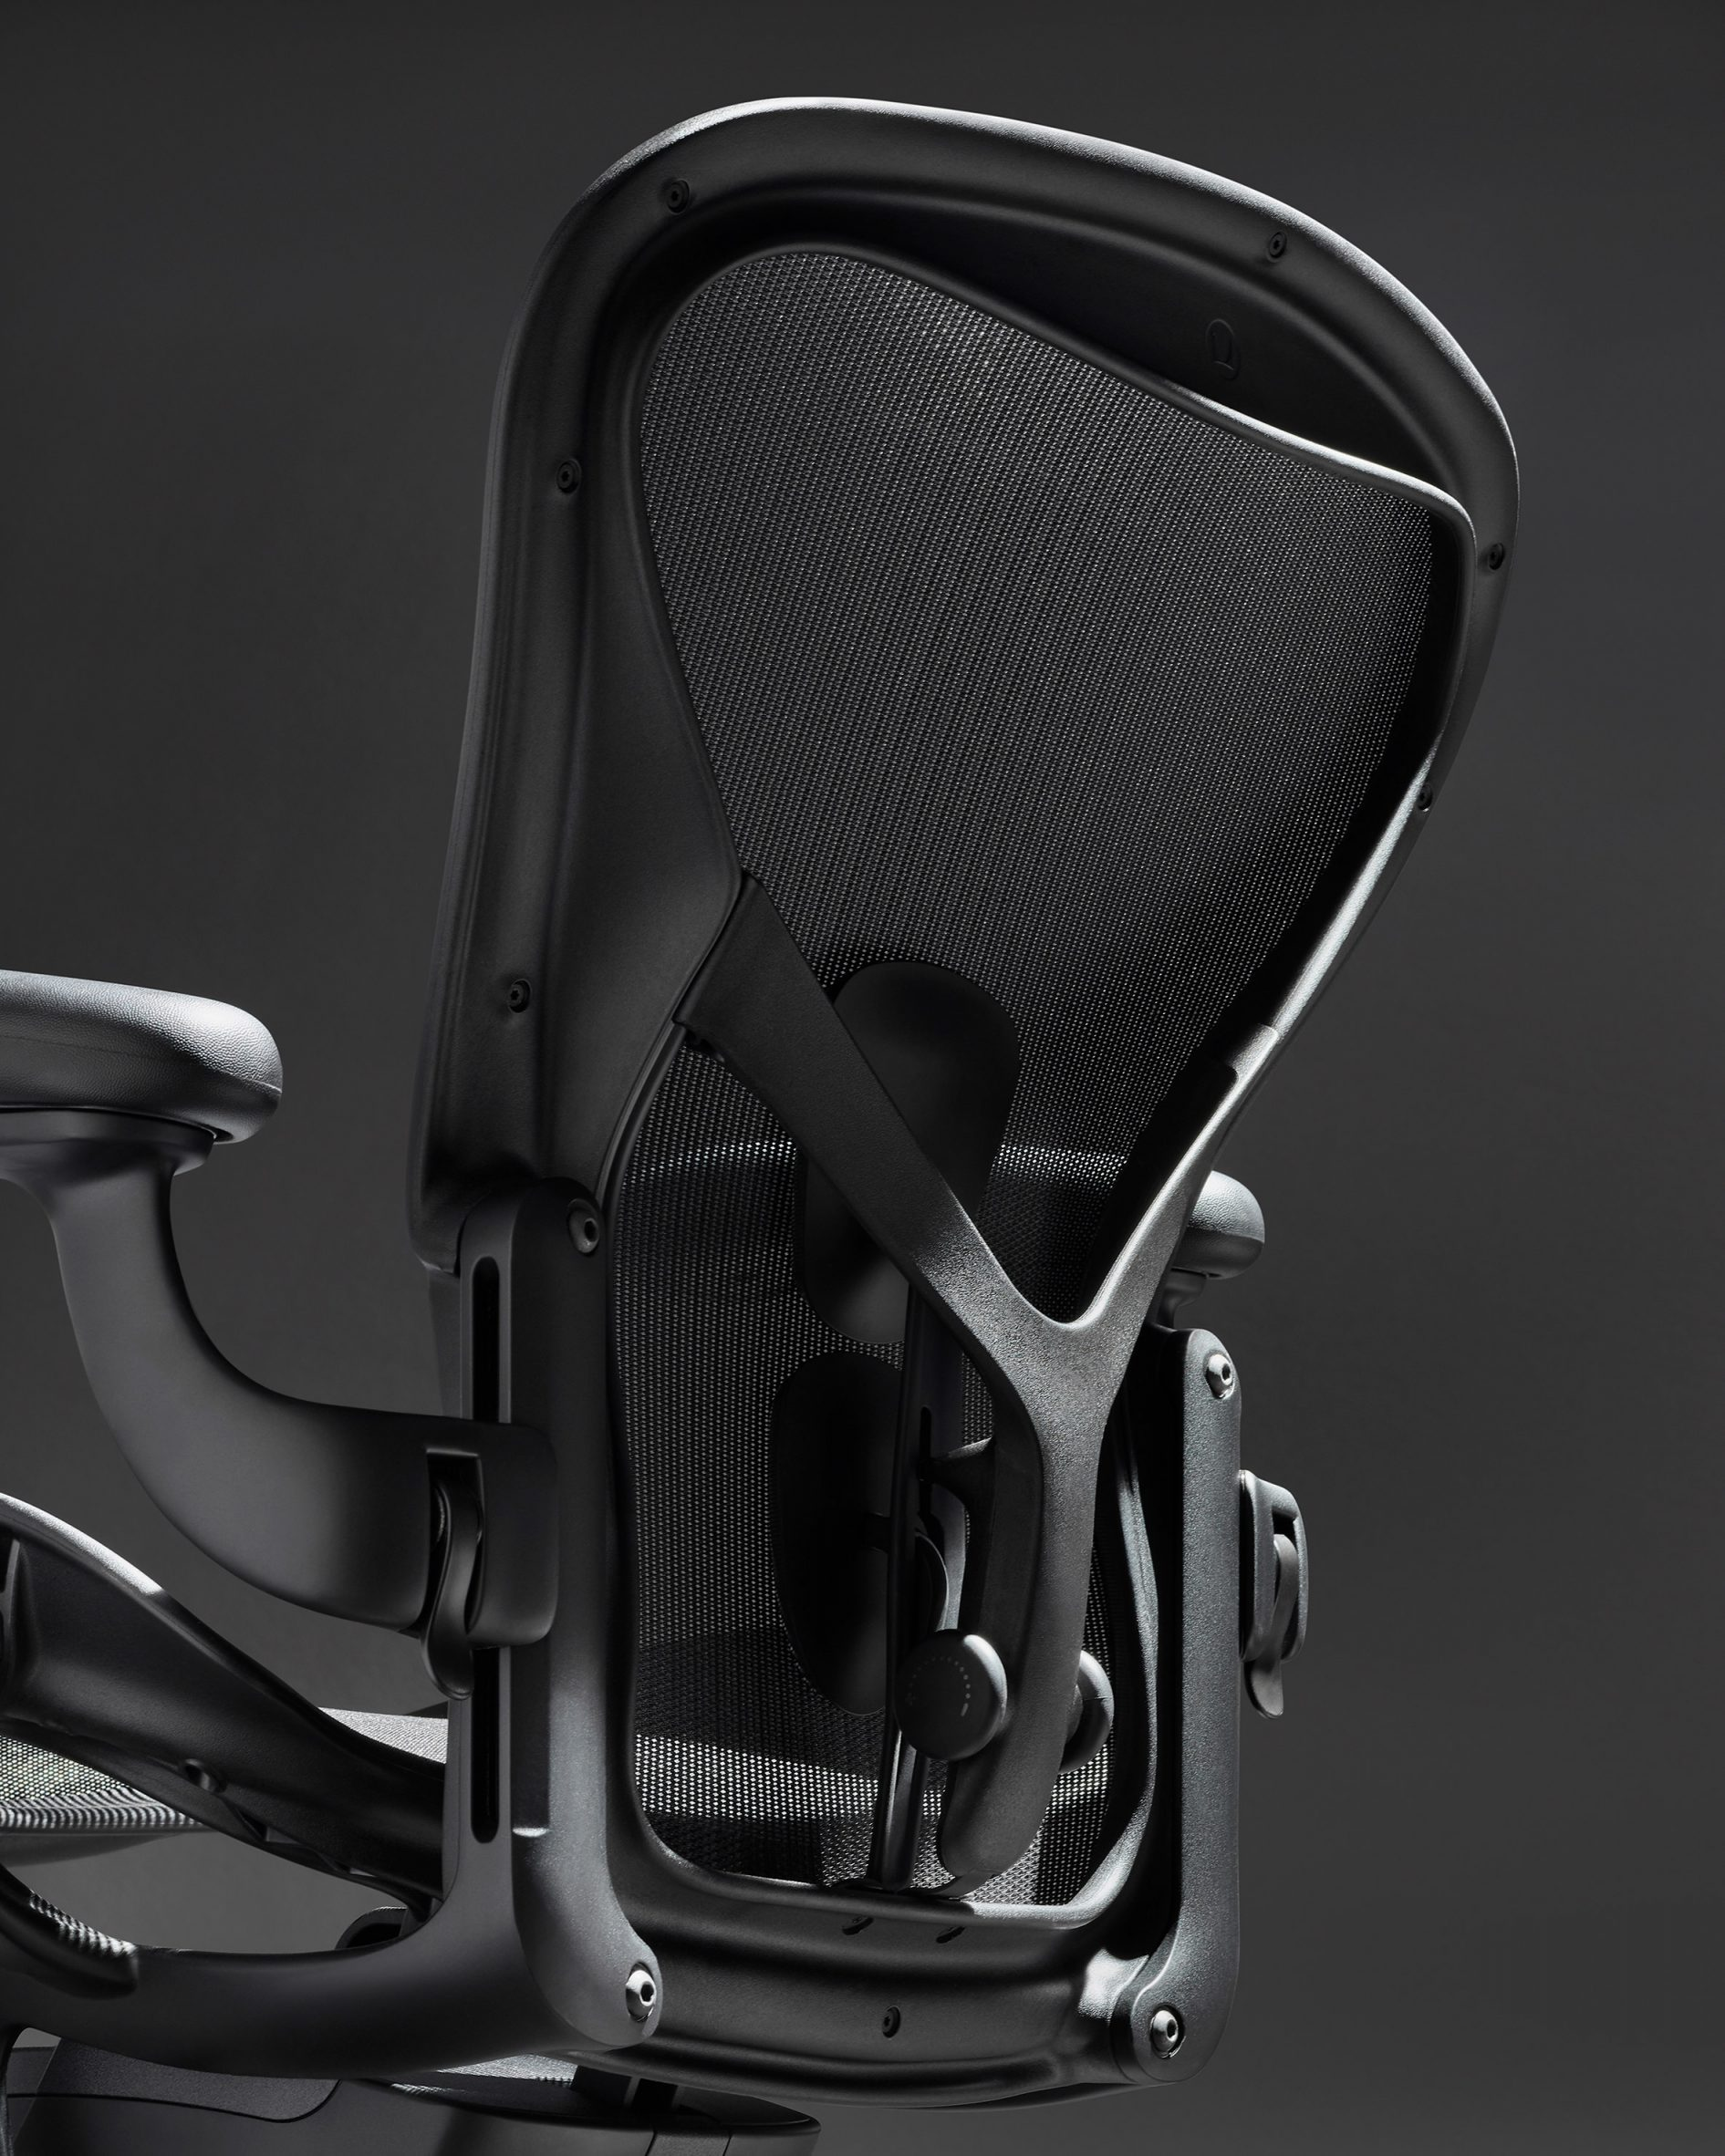 The back of a black office chair